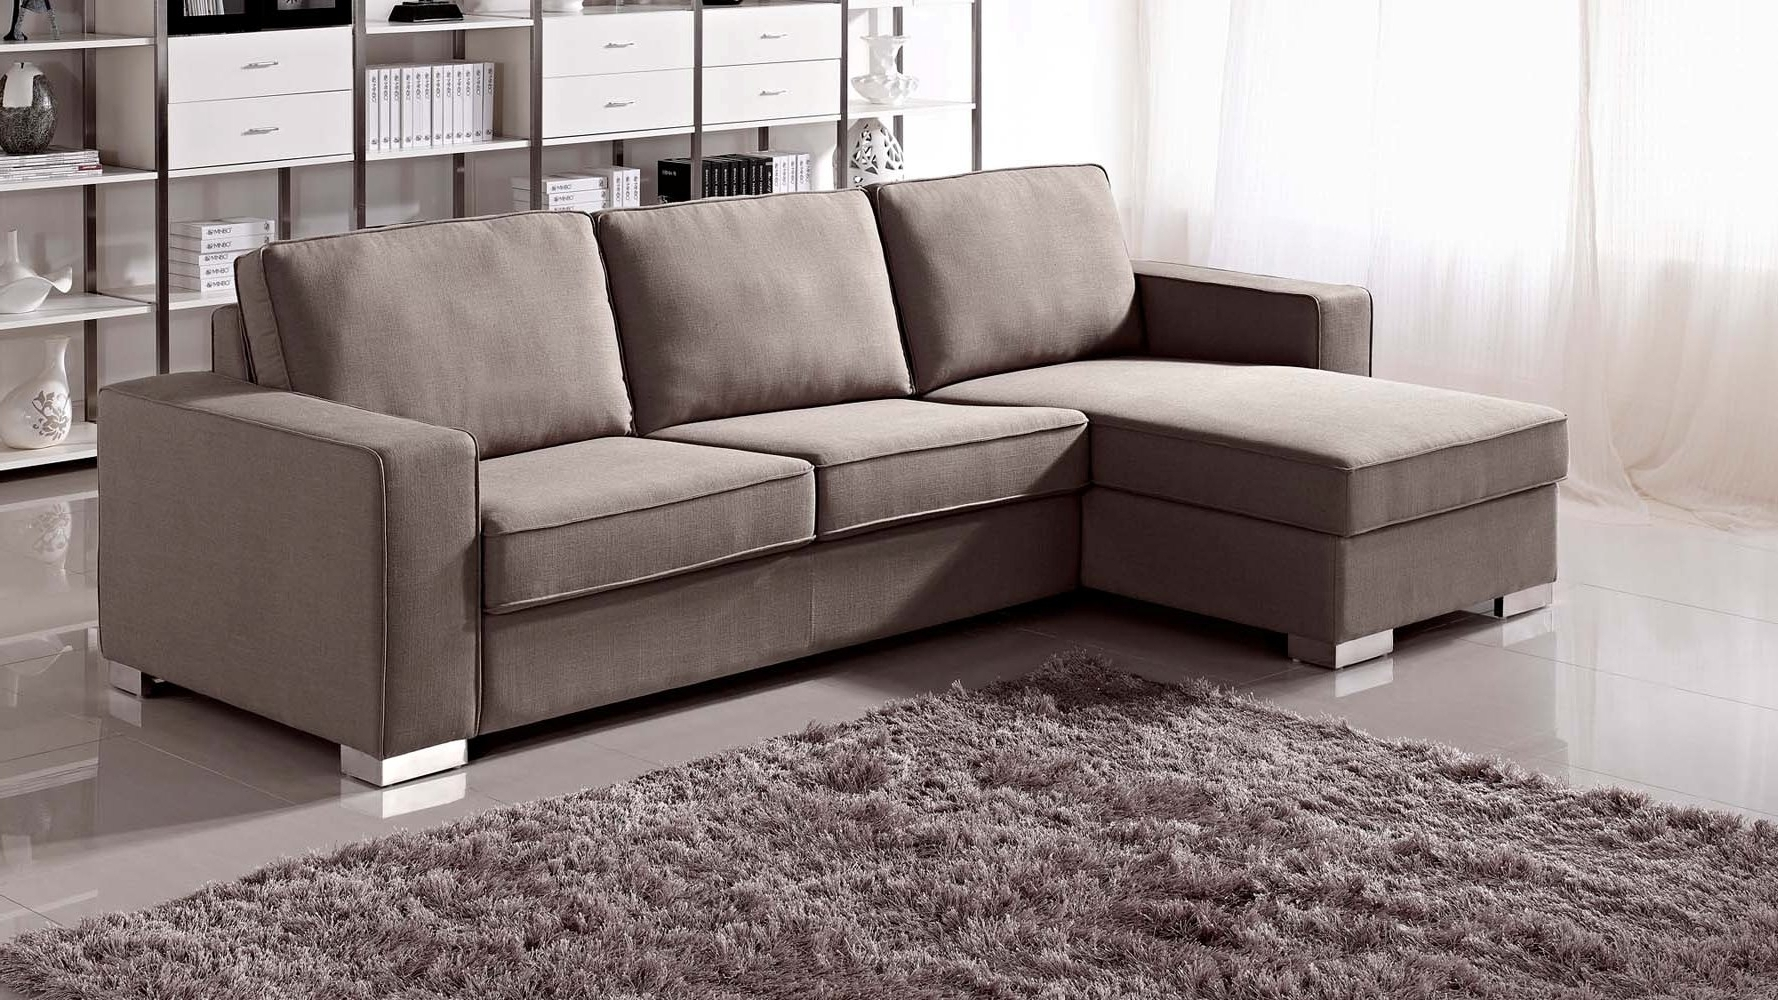 Innovative Sofa Sleeper Sectionals Beautiful Interior Design Style intended for Well-liked Sleeper Sectional Sofas With Chaise